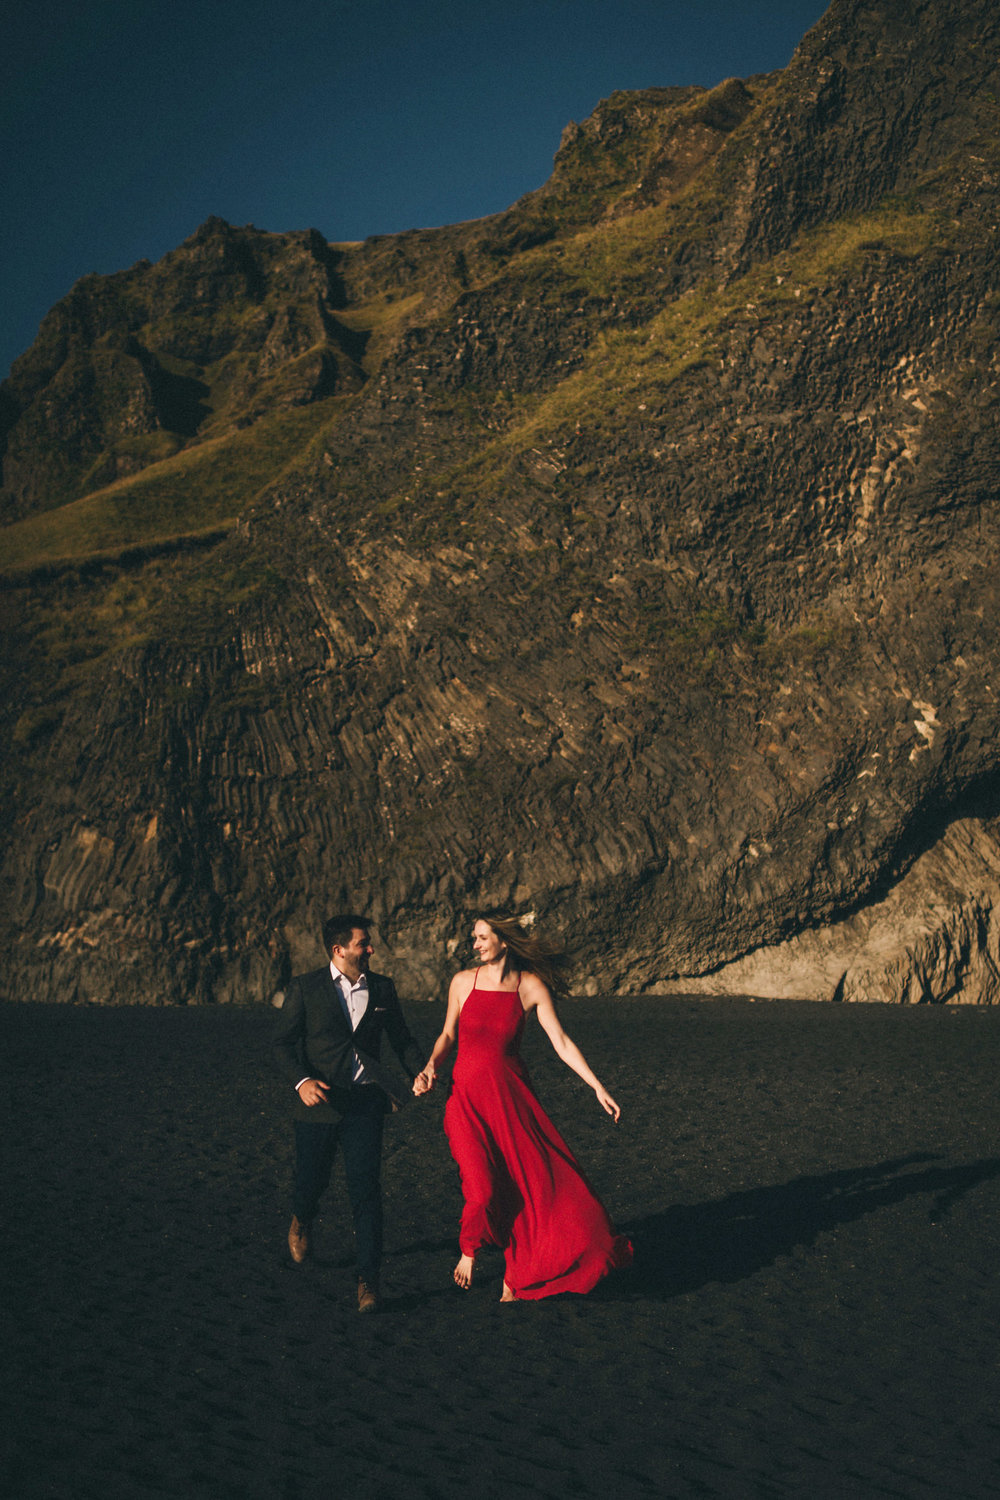 Sarah-Katherine-Davis-Photography-Iceland-Adventure-Elopement-Photographer-Louisville-Kentucky-Wedding-Photographer-Travel-Vik-Beach-Engagement-Session-Red-Dress-Reynisfjara-207edit.jpg